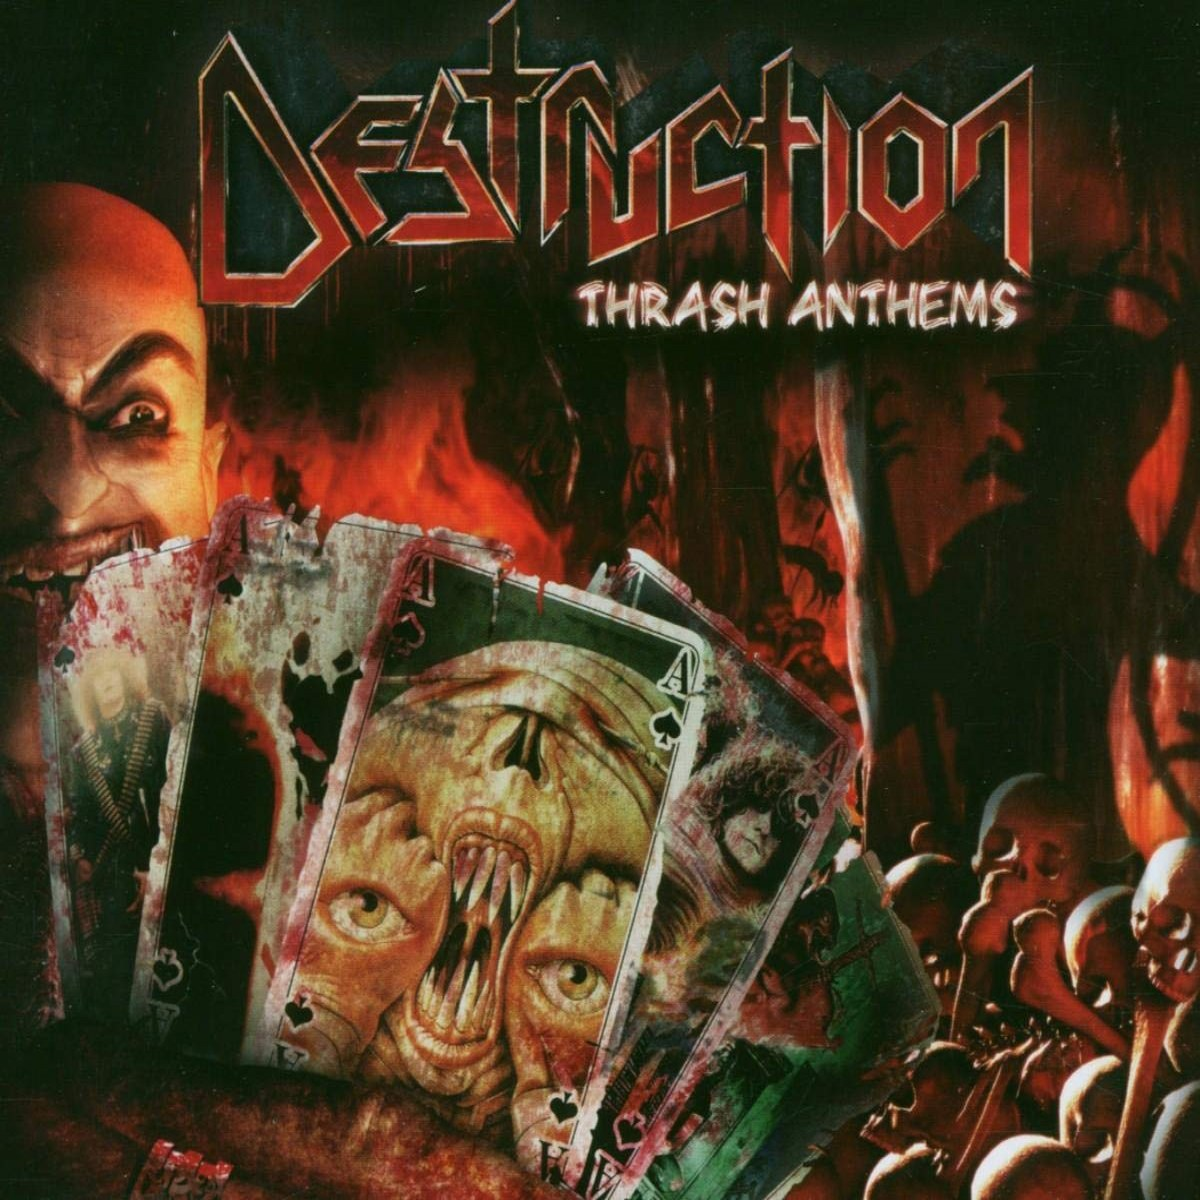 Review for Destruction - Thrash Anthems